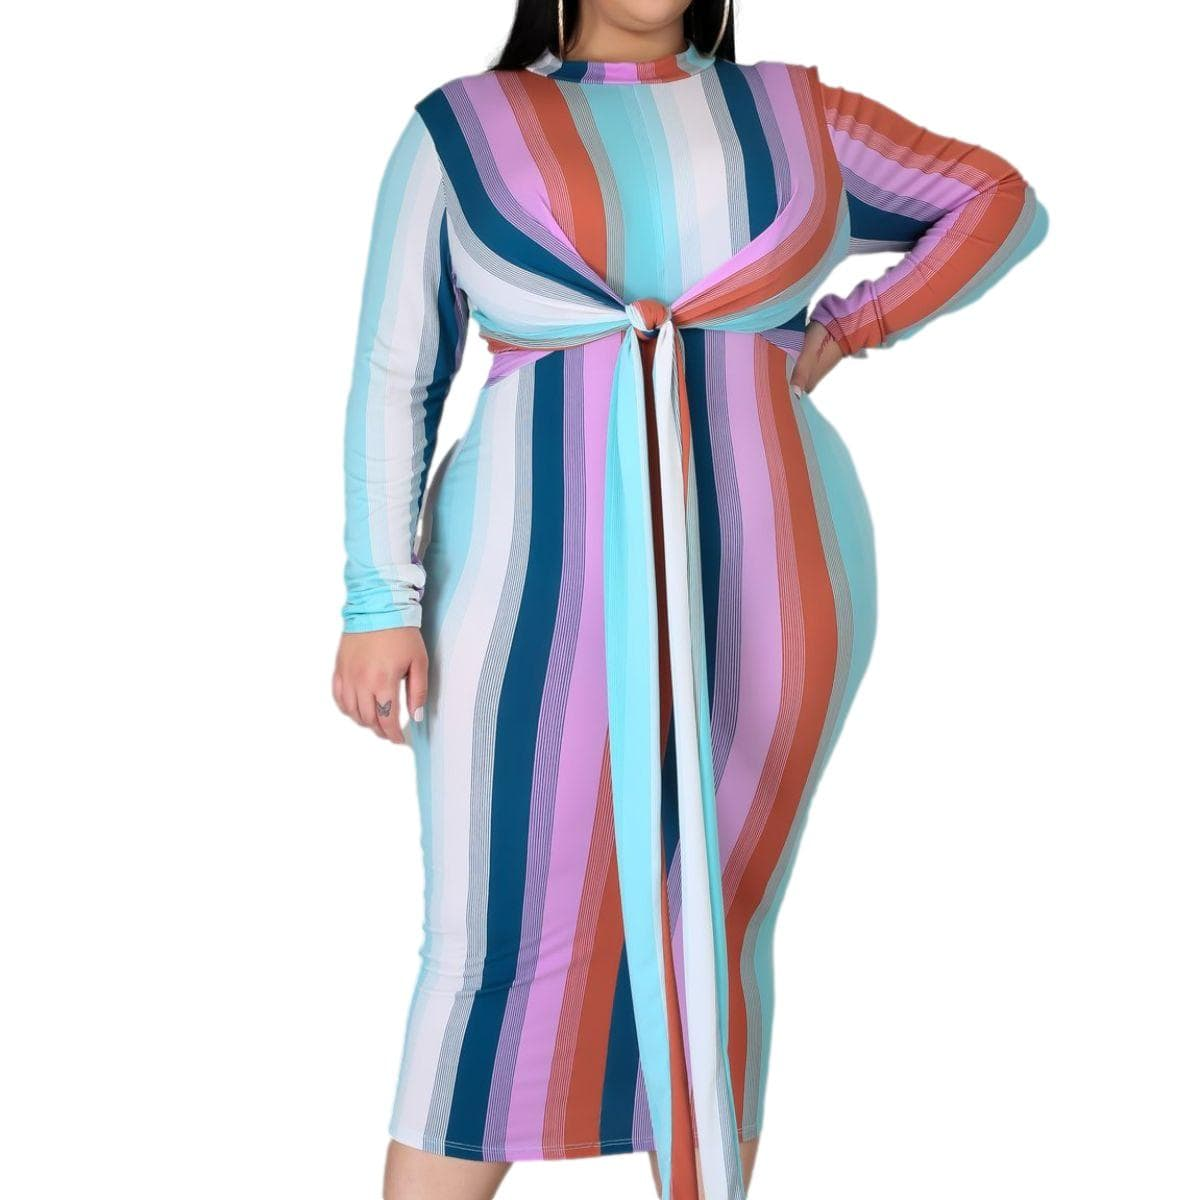 You're My Stripe Dress - Posh Shoppe